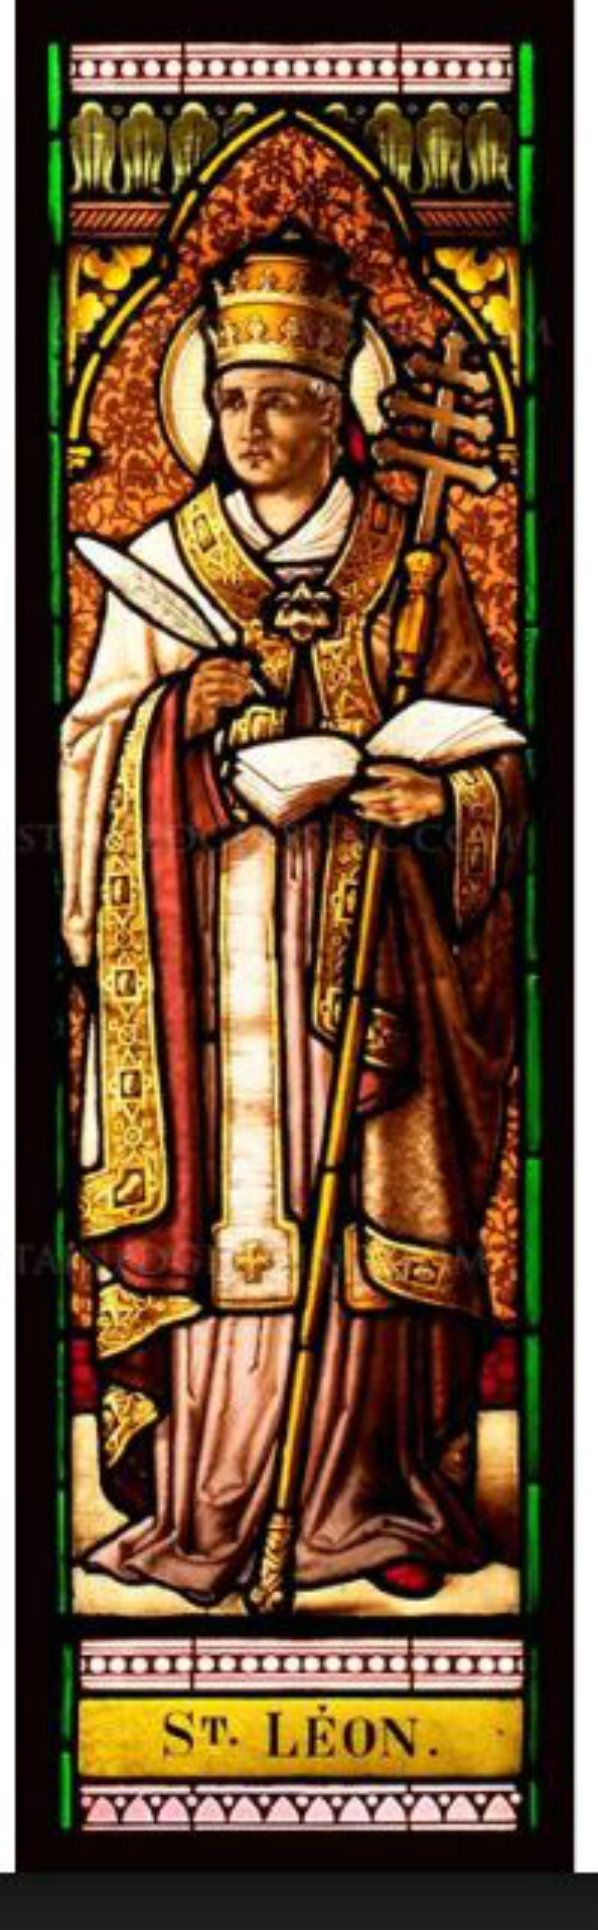 Blessed Memorial of St Leo the Great – November 10 #pinterest #stleothegreat Pope Leo the Great is the first Pope whose sermons and letters, many of which were on faith and charity, were preserved in extensive collections. He served as pontiff from 440.......